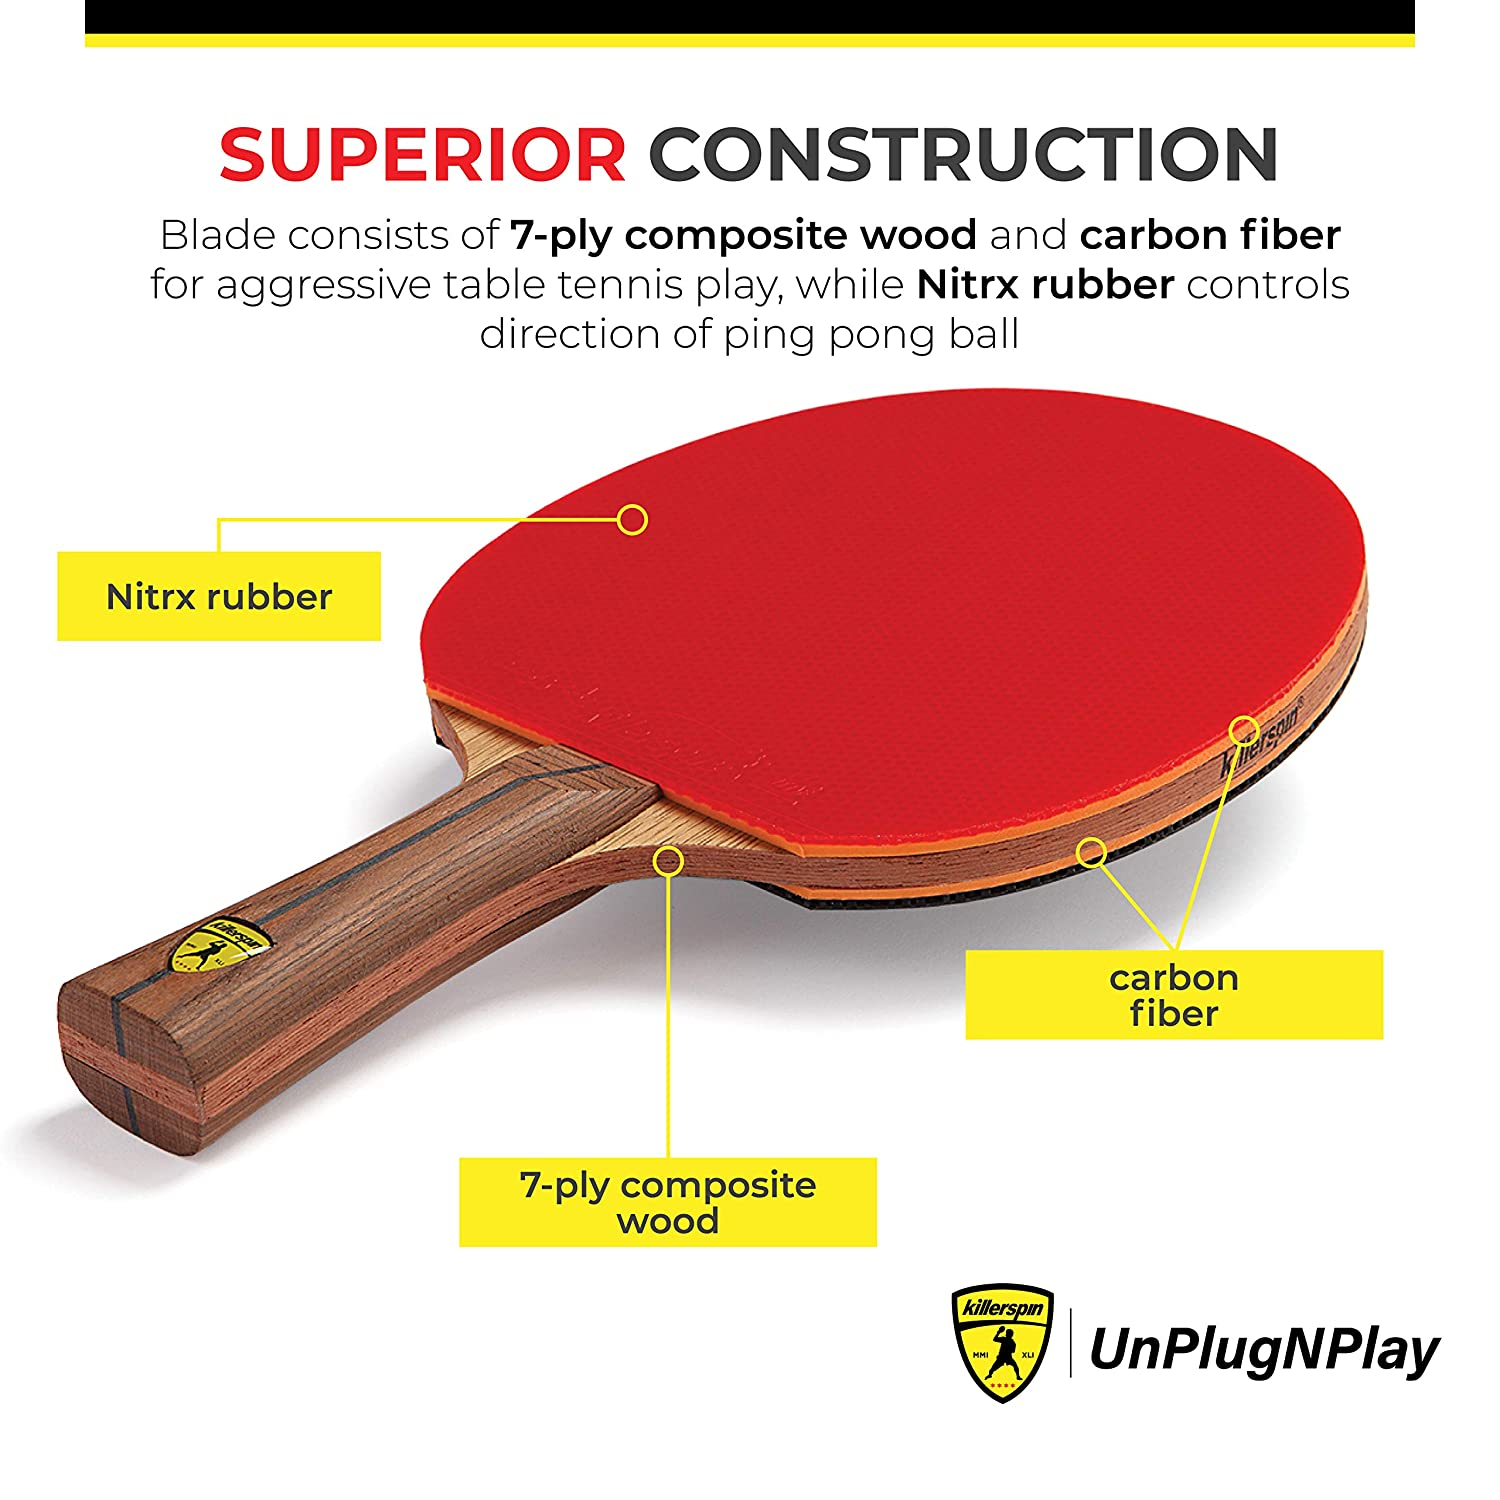 Killerspin Jet 800 Table Tennis Paddle, Professional Ping Pong Paddle, Table Tennis Racket with Carbon Fiber Blade, Nitrx Rubber Grips Ping Pong Balls, Memory Box for Storage – Red & Black 71wO0Z6tmHL._SL1500_